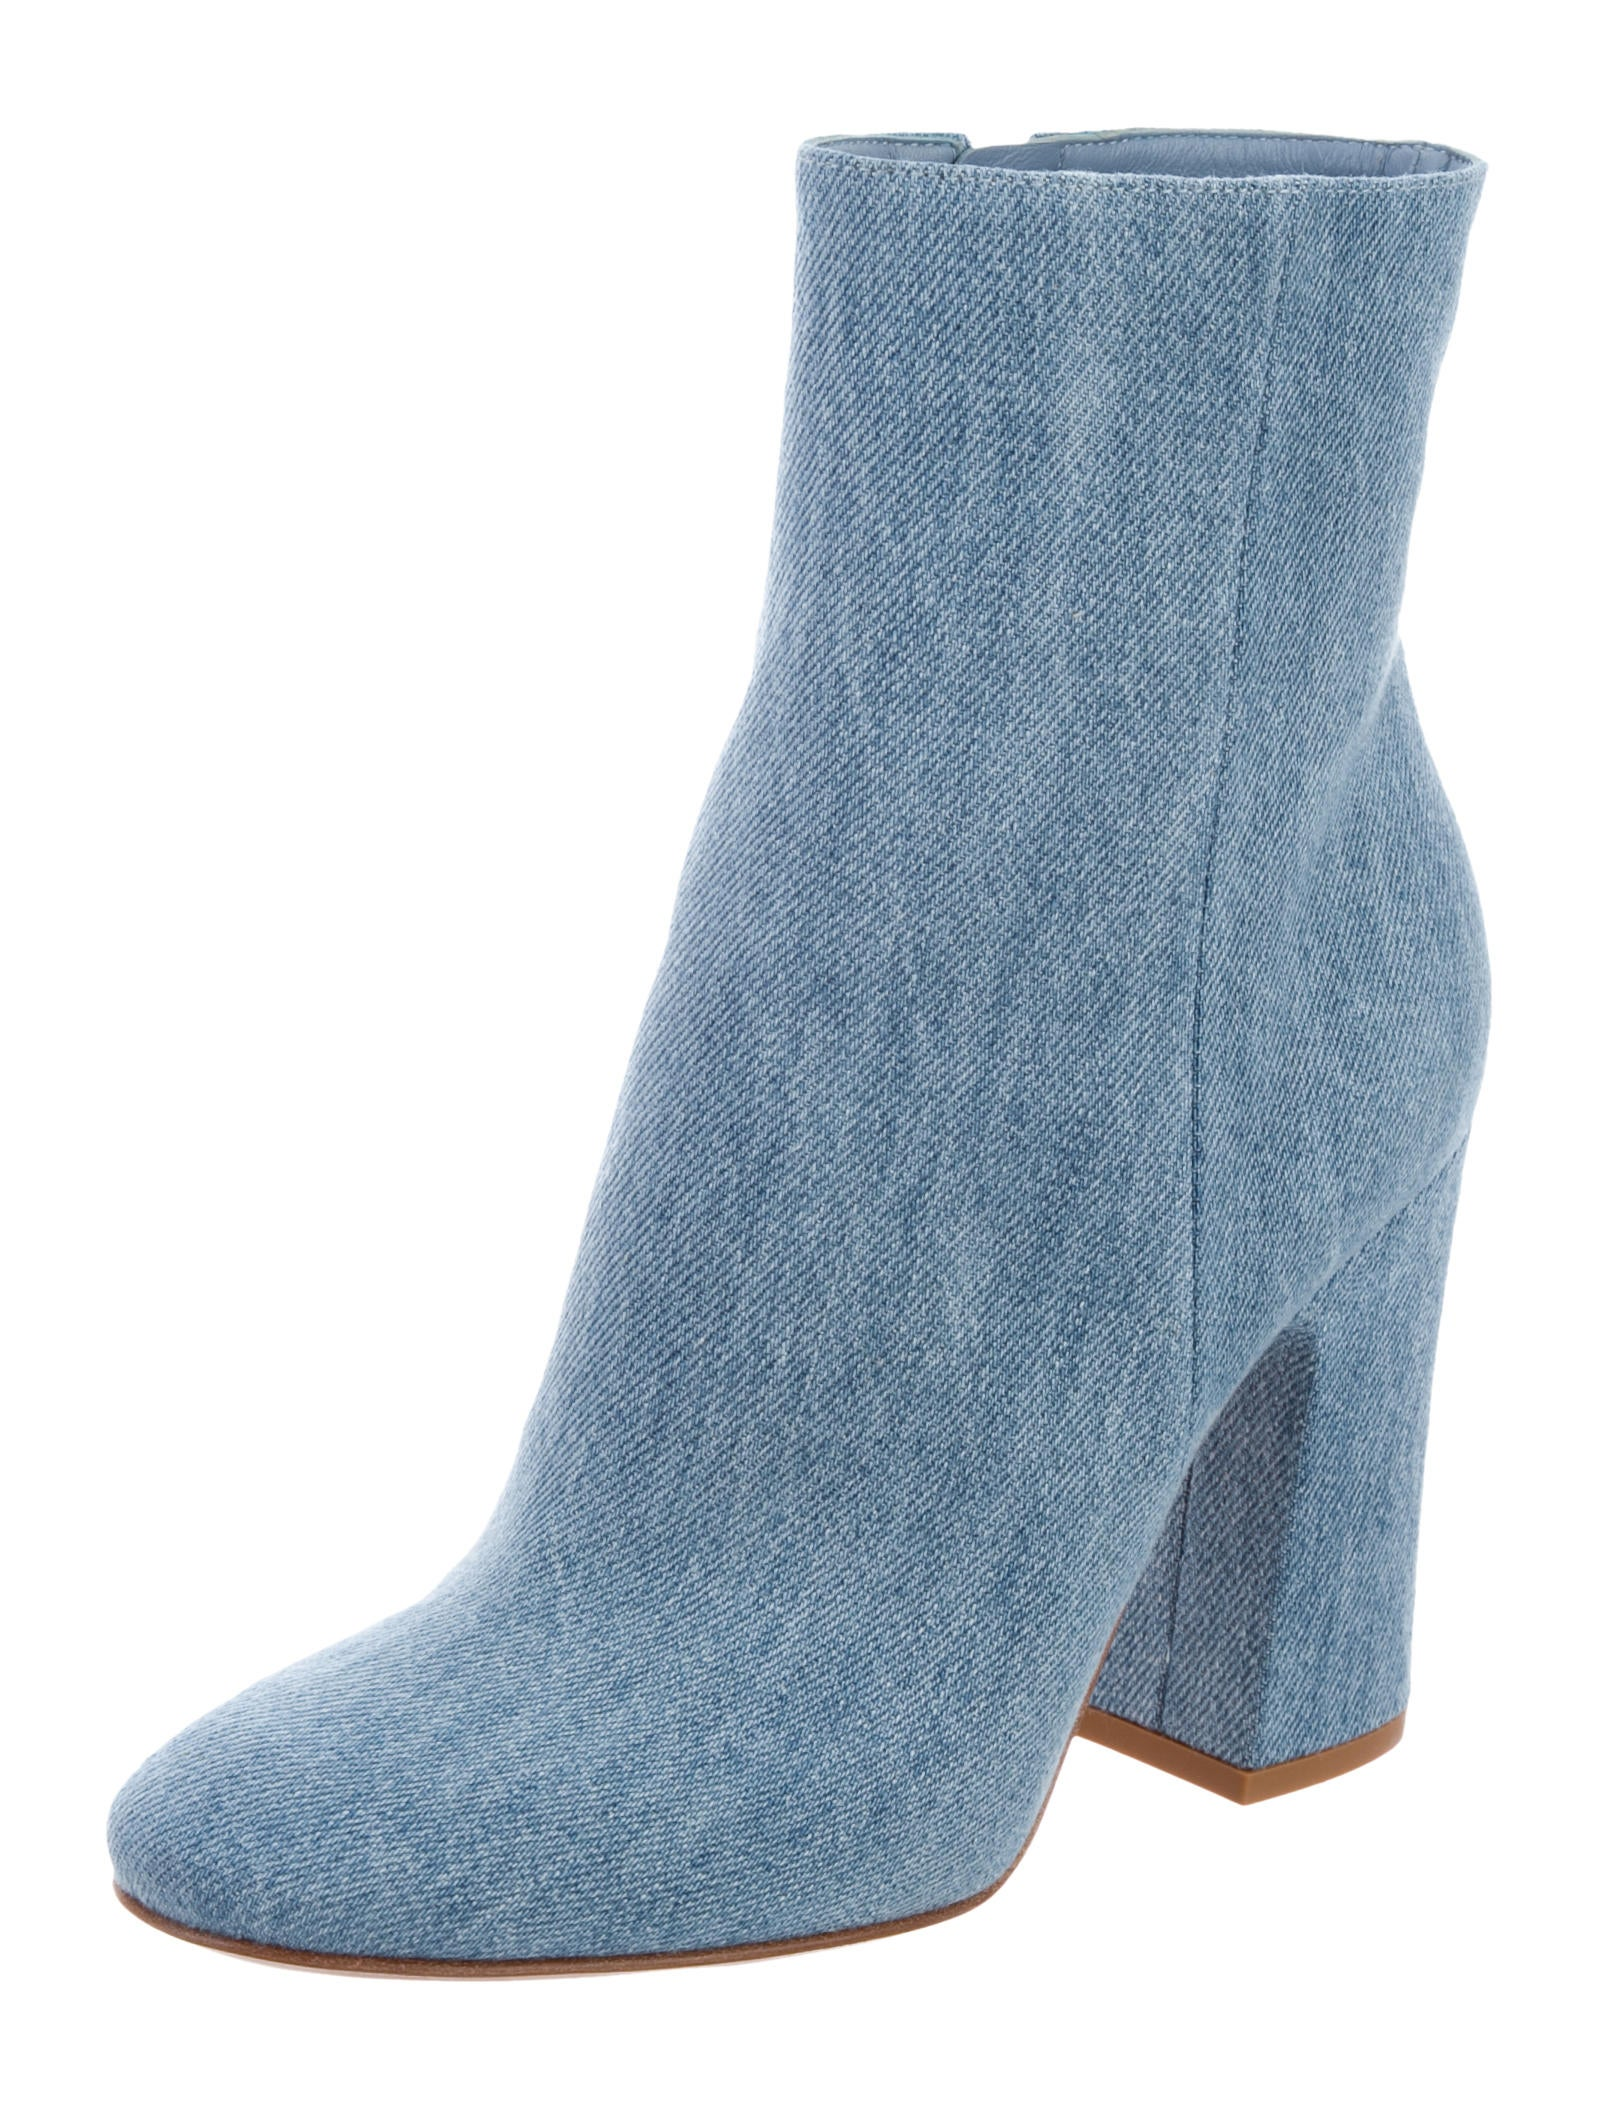 Gianvito Rossi 2017 Shelly Boots w/ Tags outlet 100% authentic free shipping shopping online cFm4o